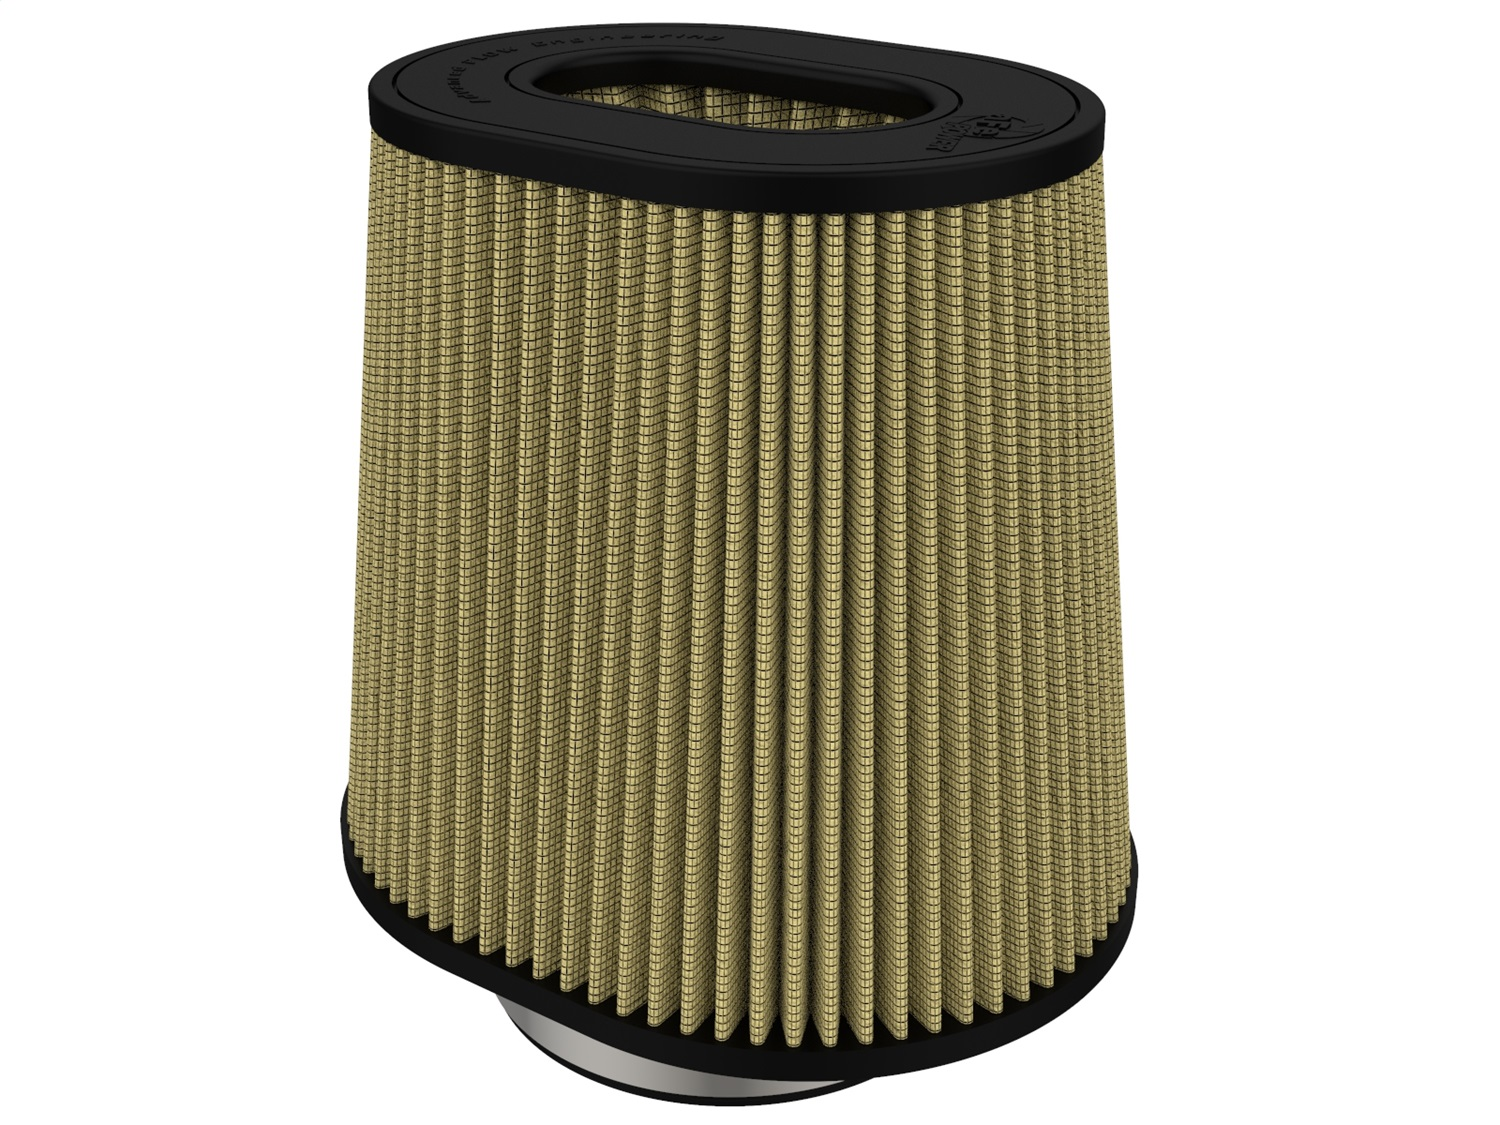 AFE Filters 72-91149 Magnum FORCE Pro-GUARD 7 Replacement Air Filter